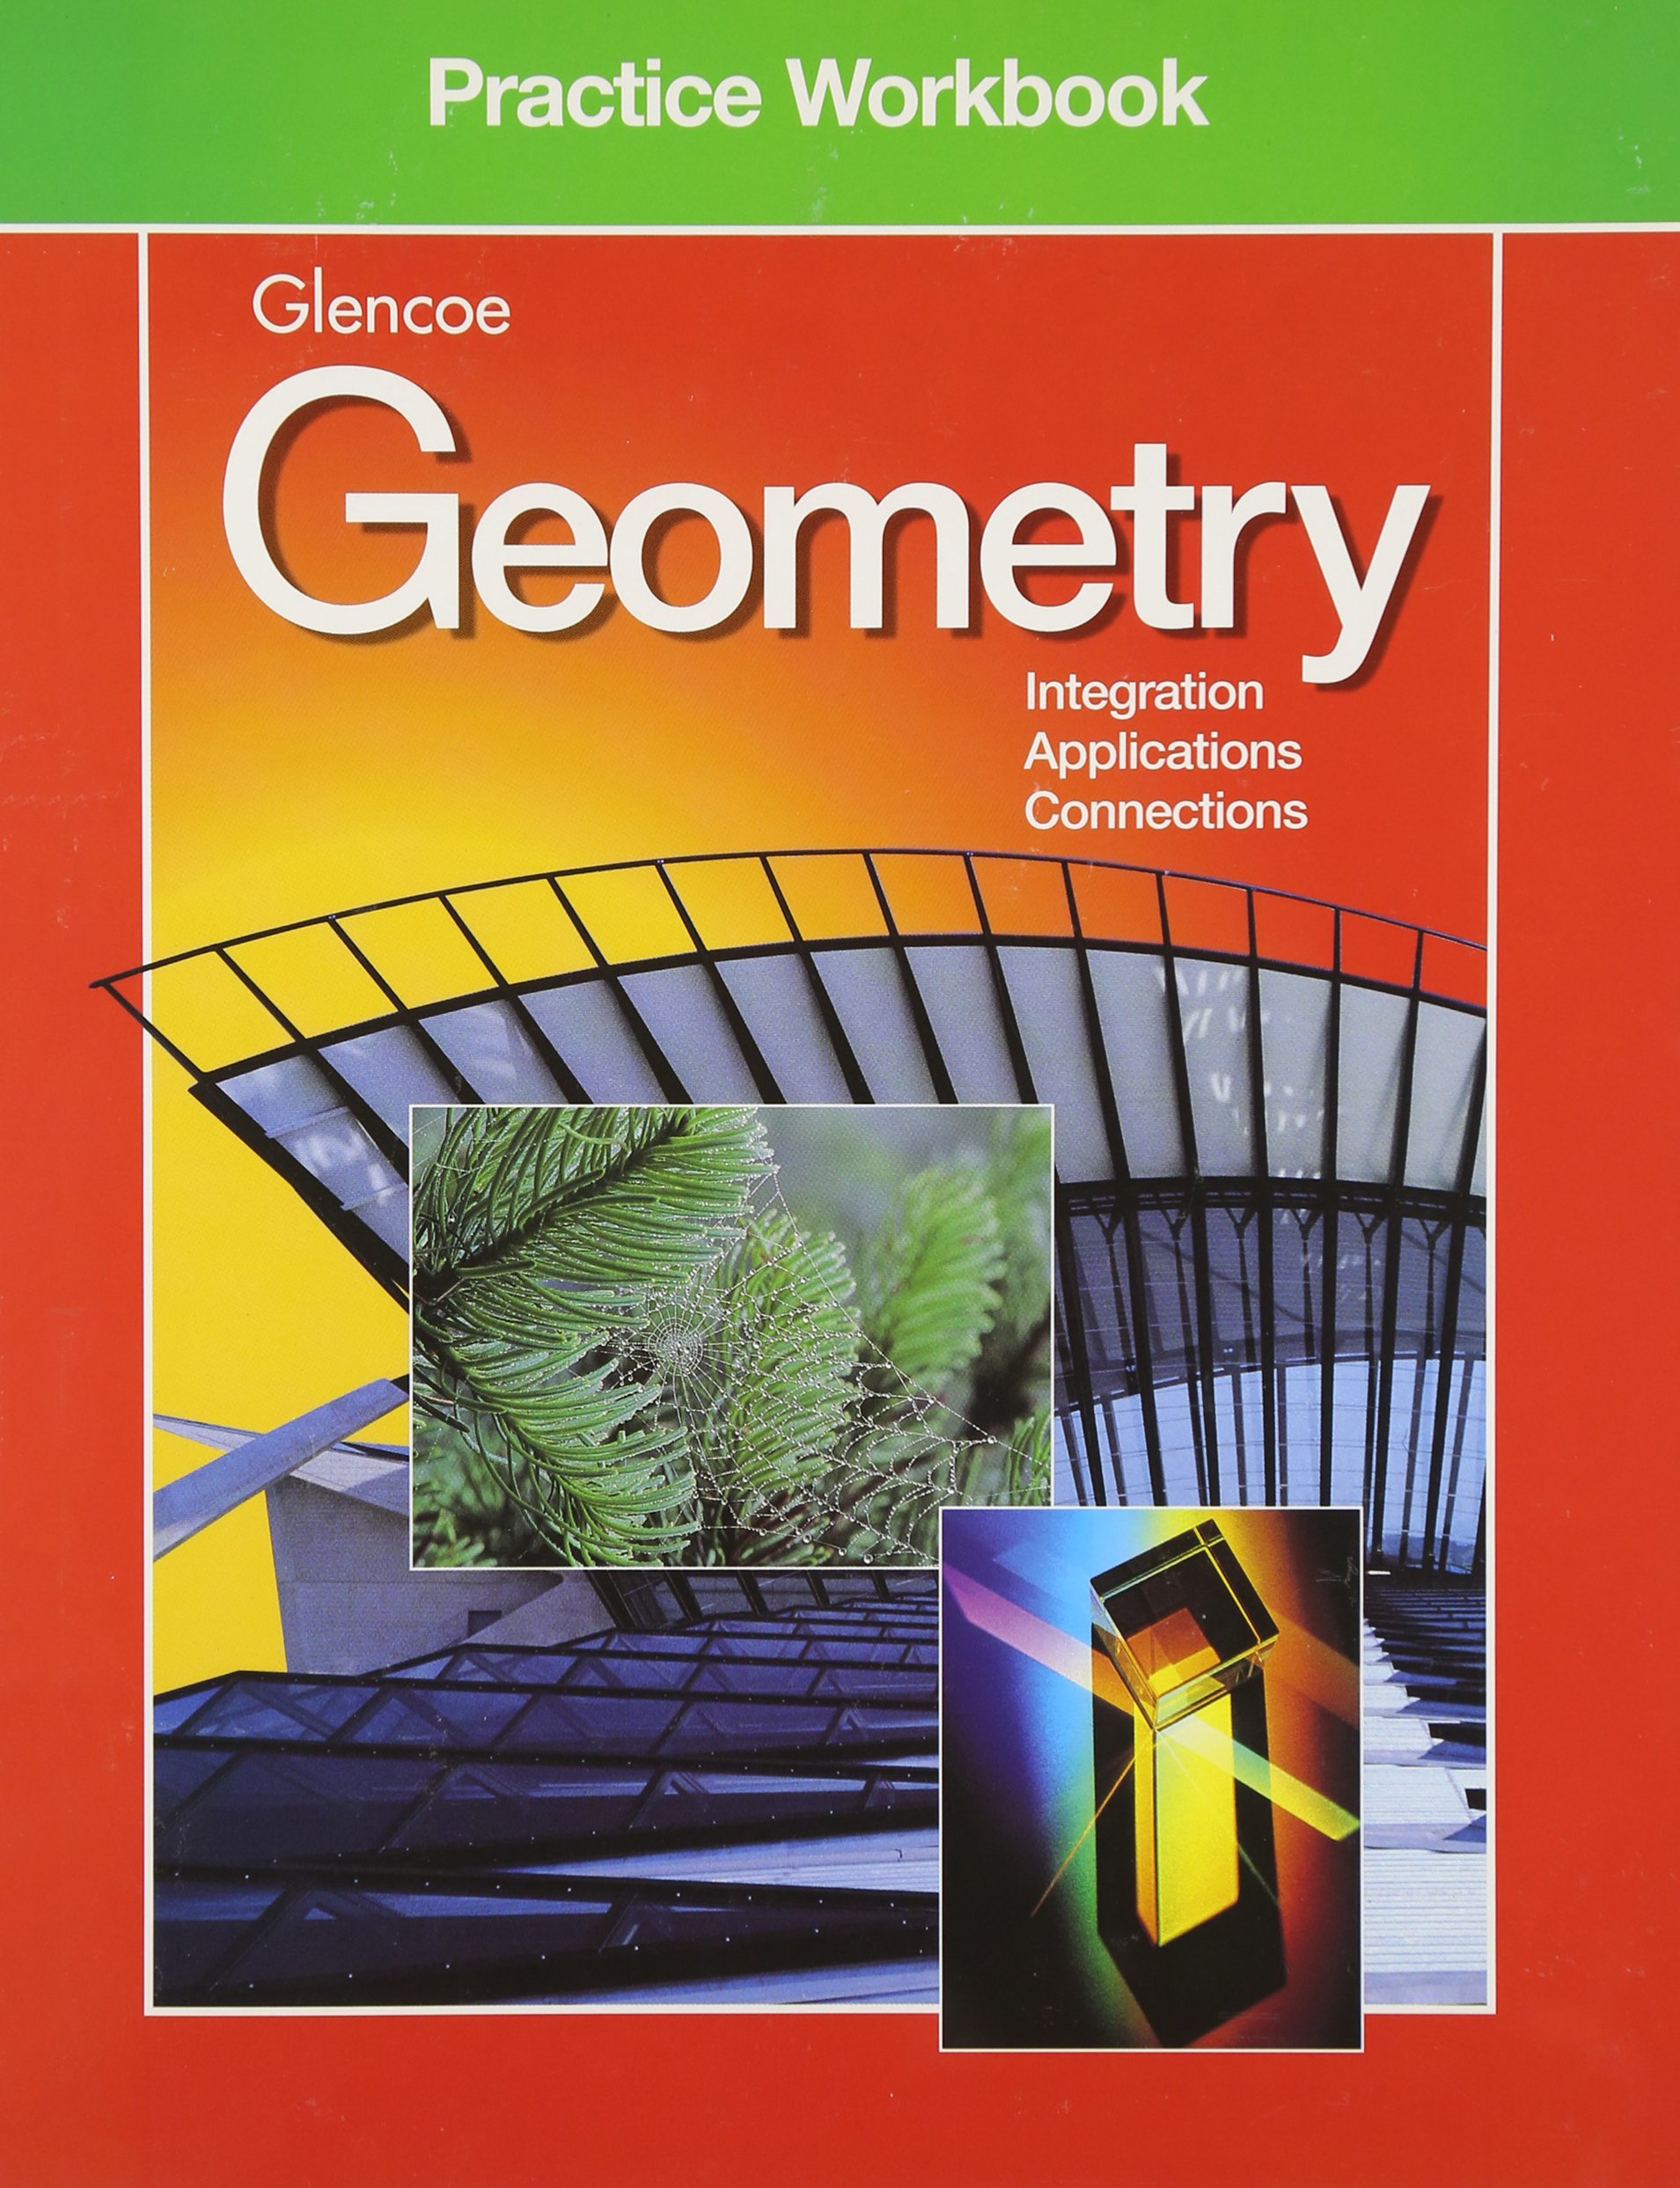 Glencoe Geometry Textbook Pdf